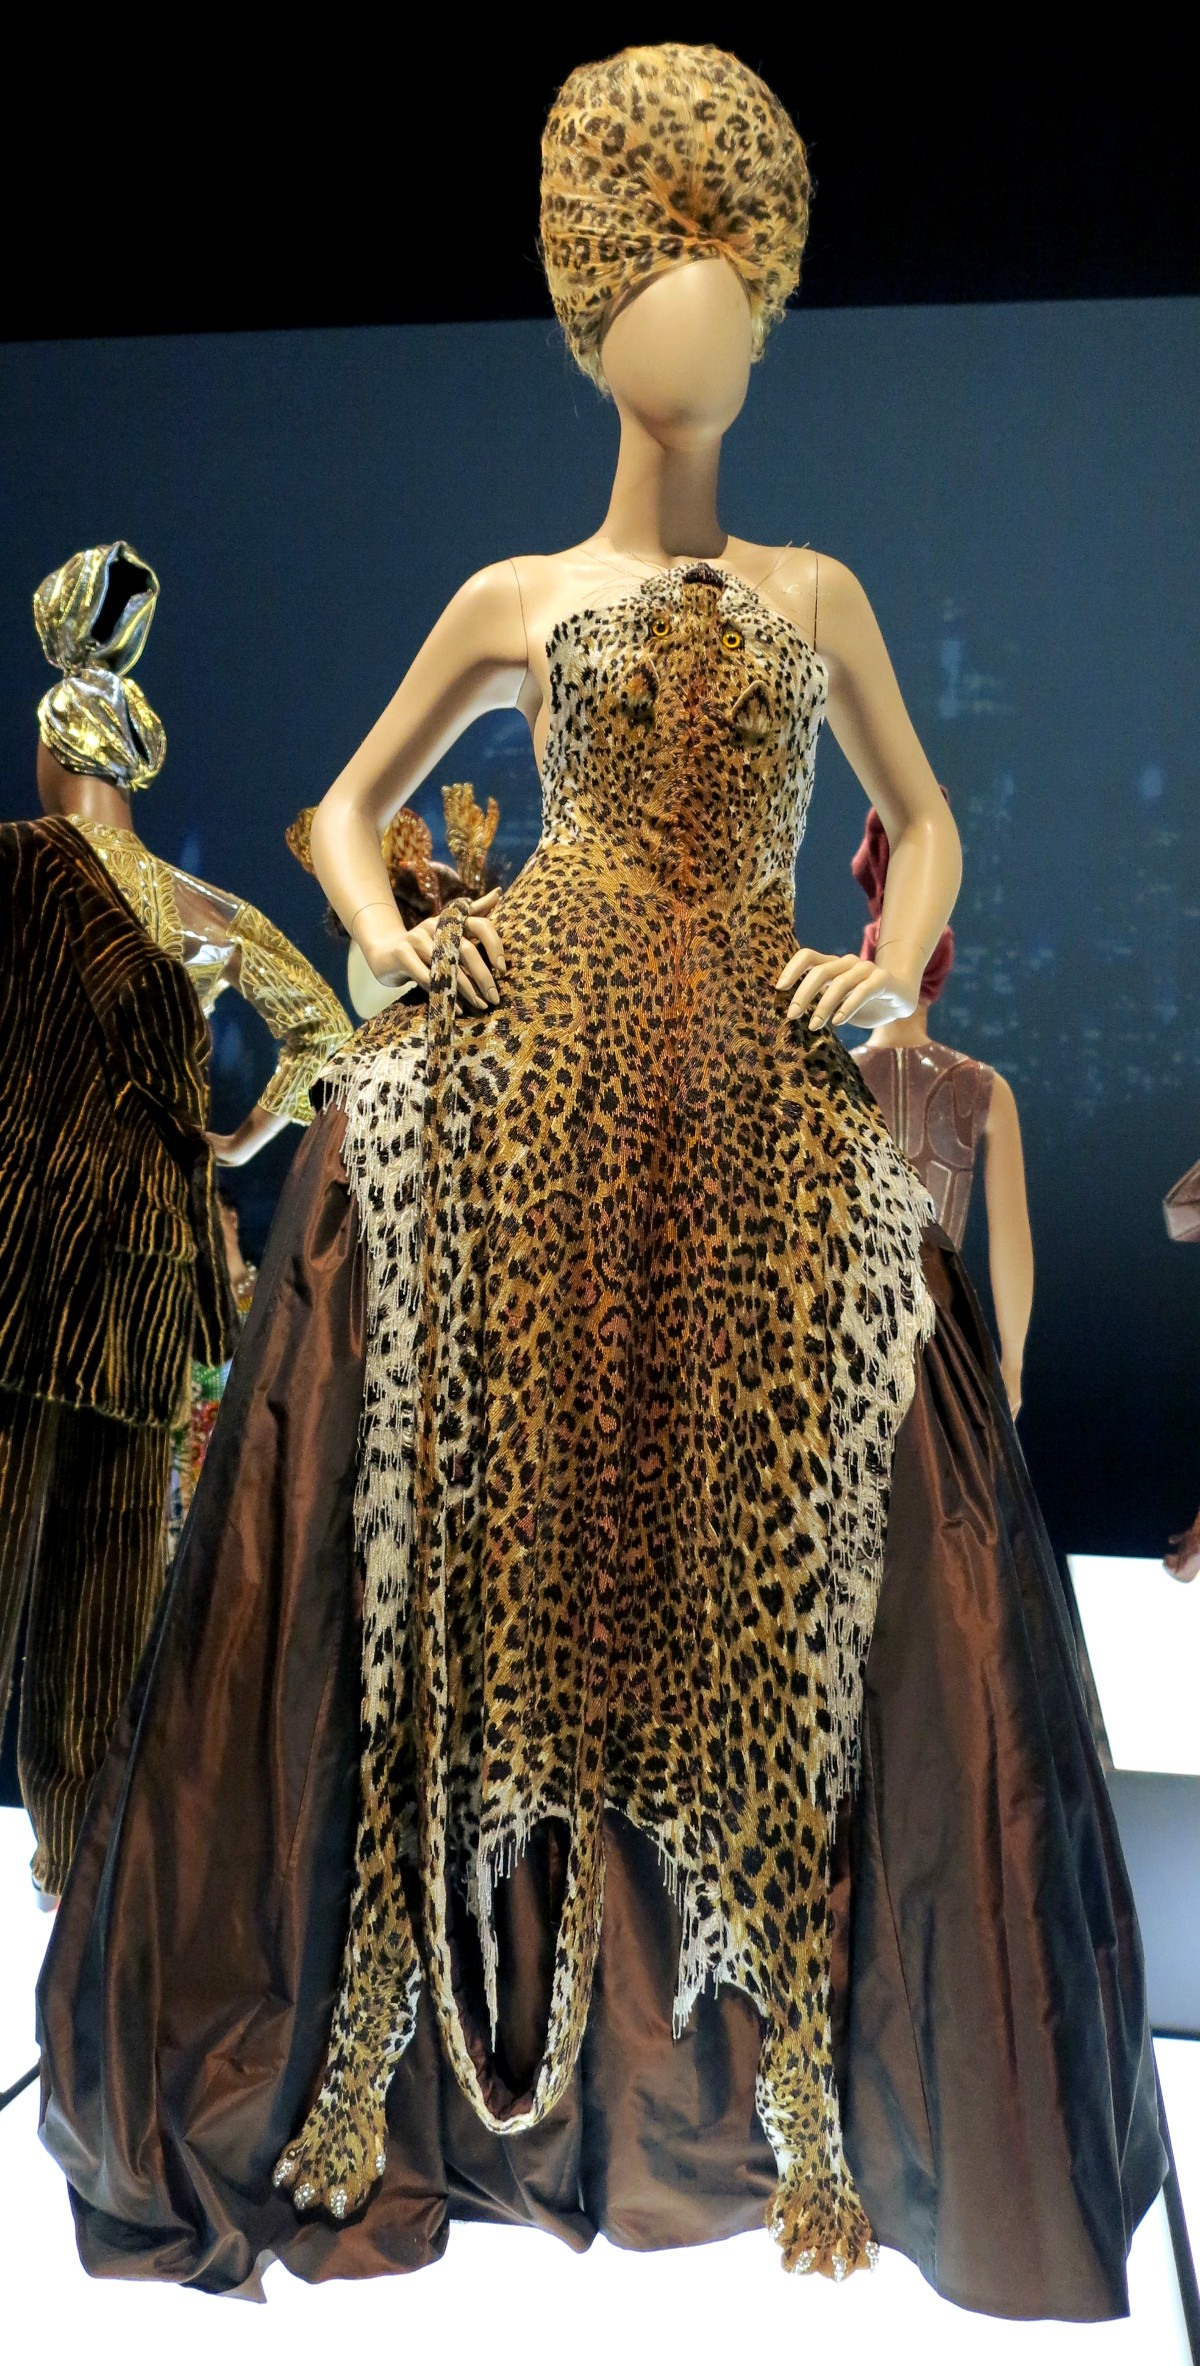 Leopard dress Jean Paul Gaultier National Gallery of Victoria